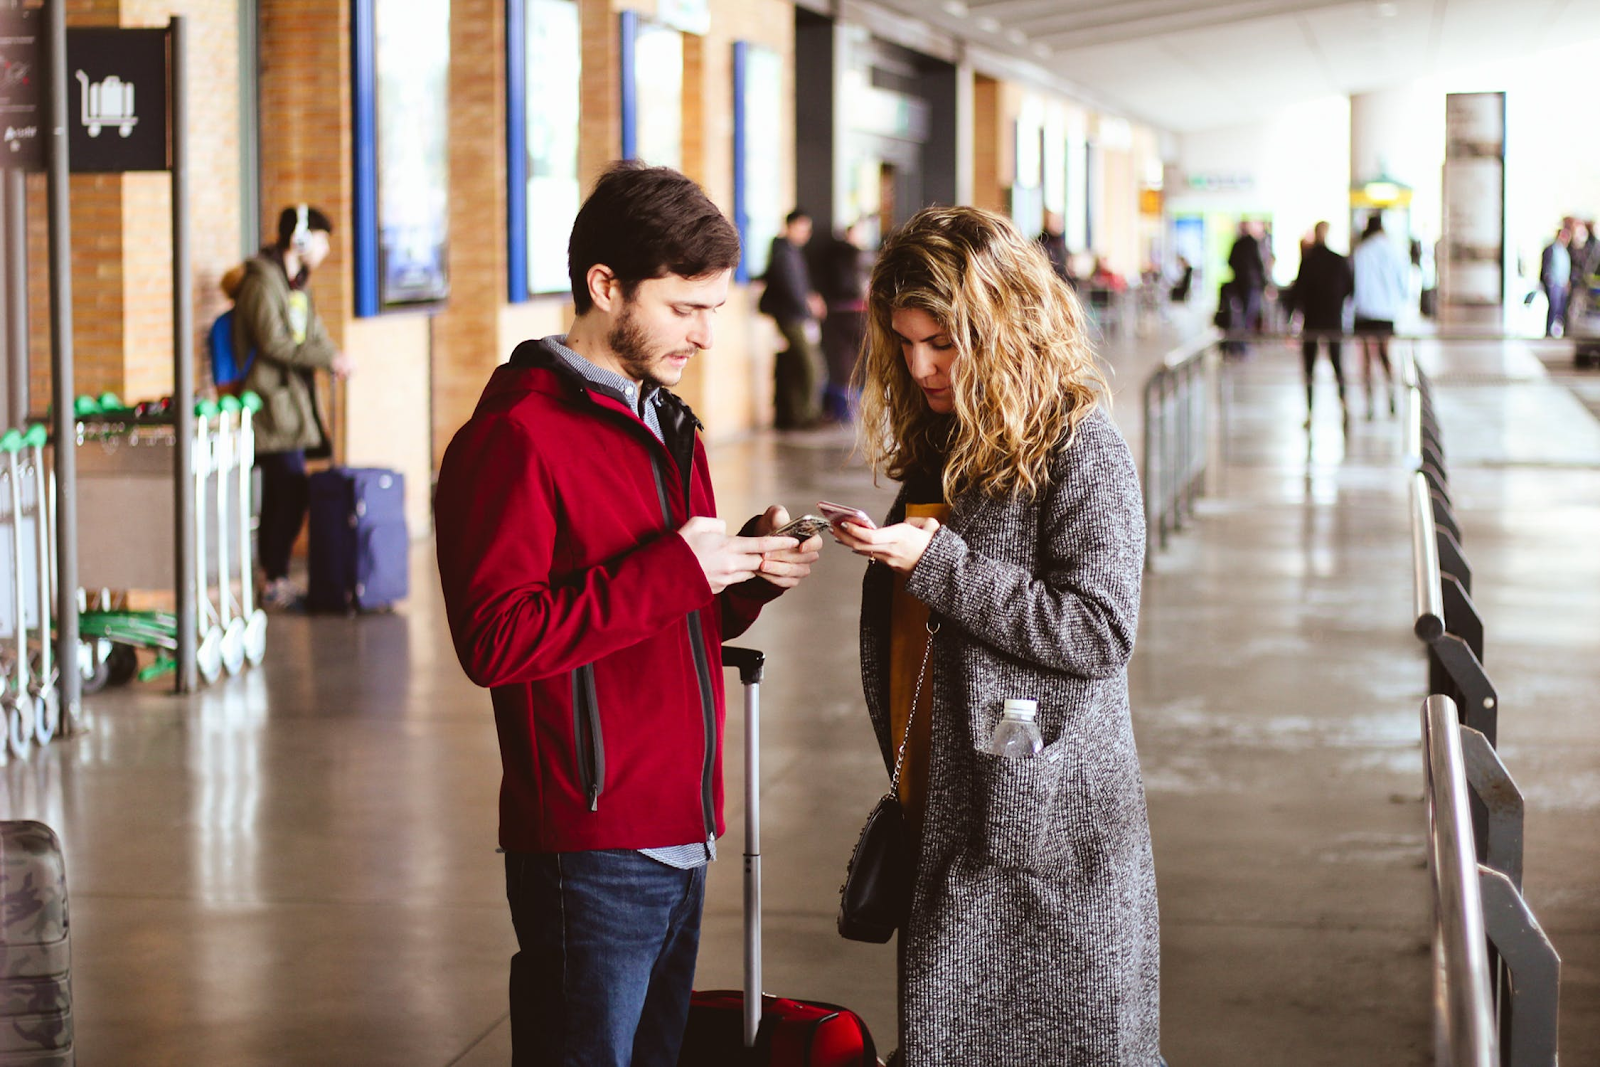 two people using cell phones in an airport